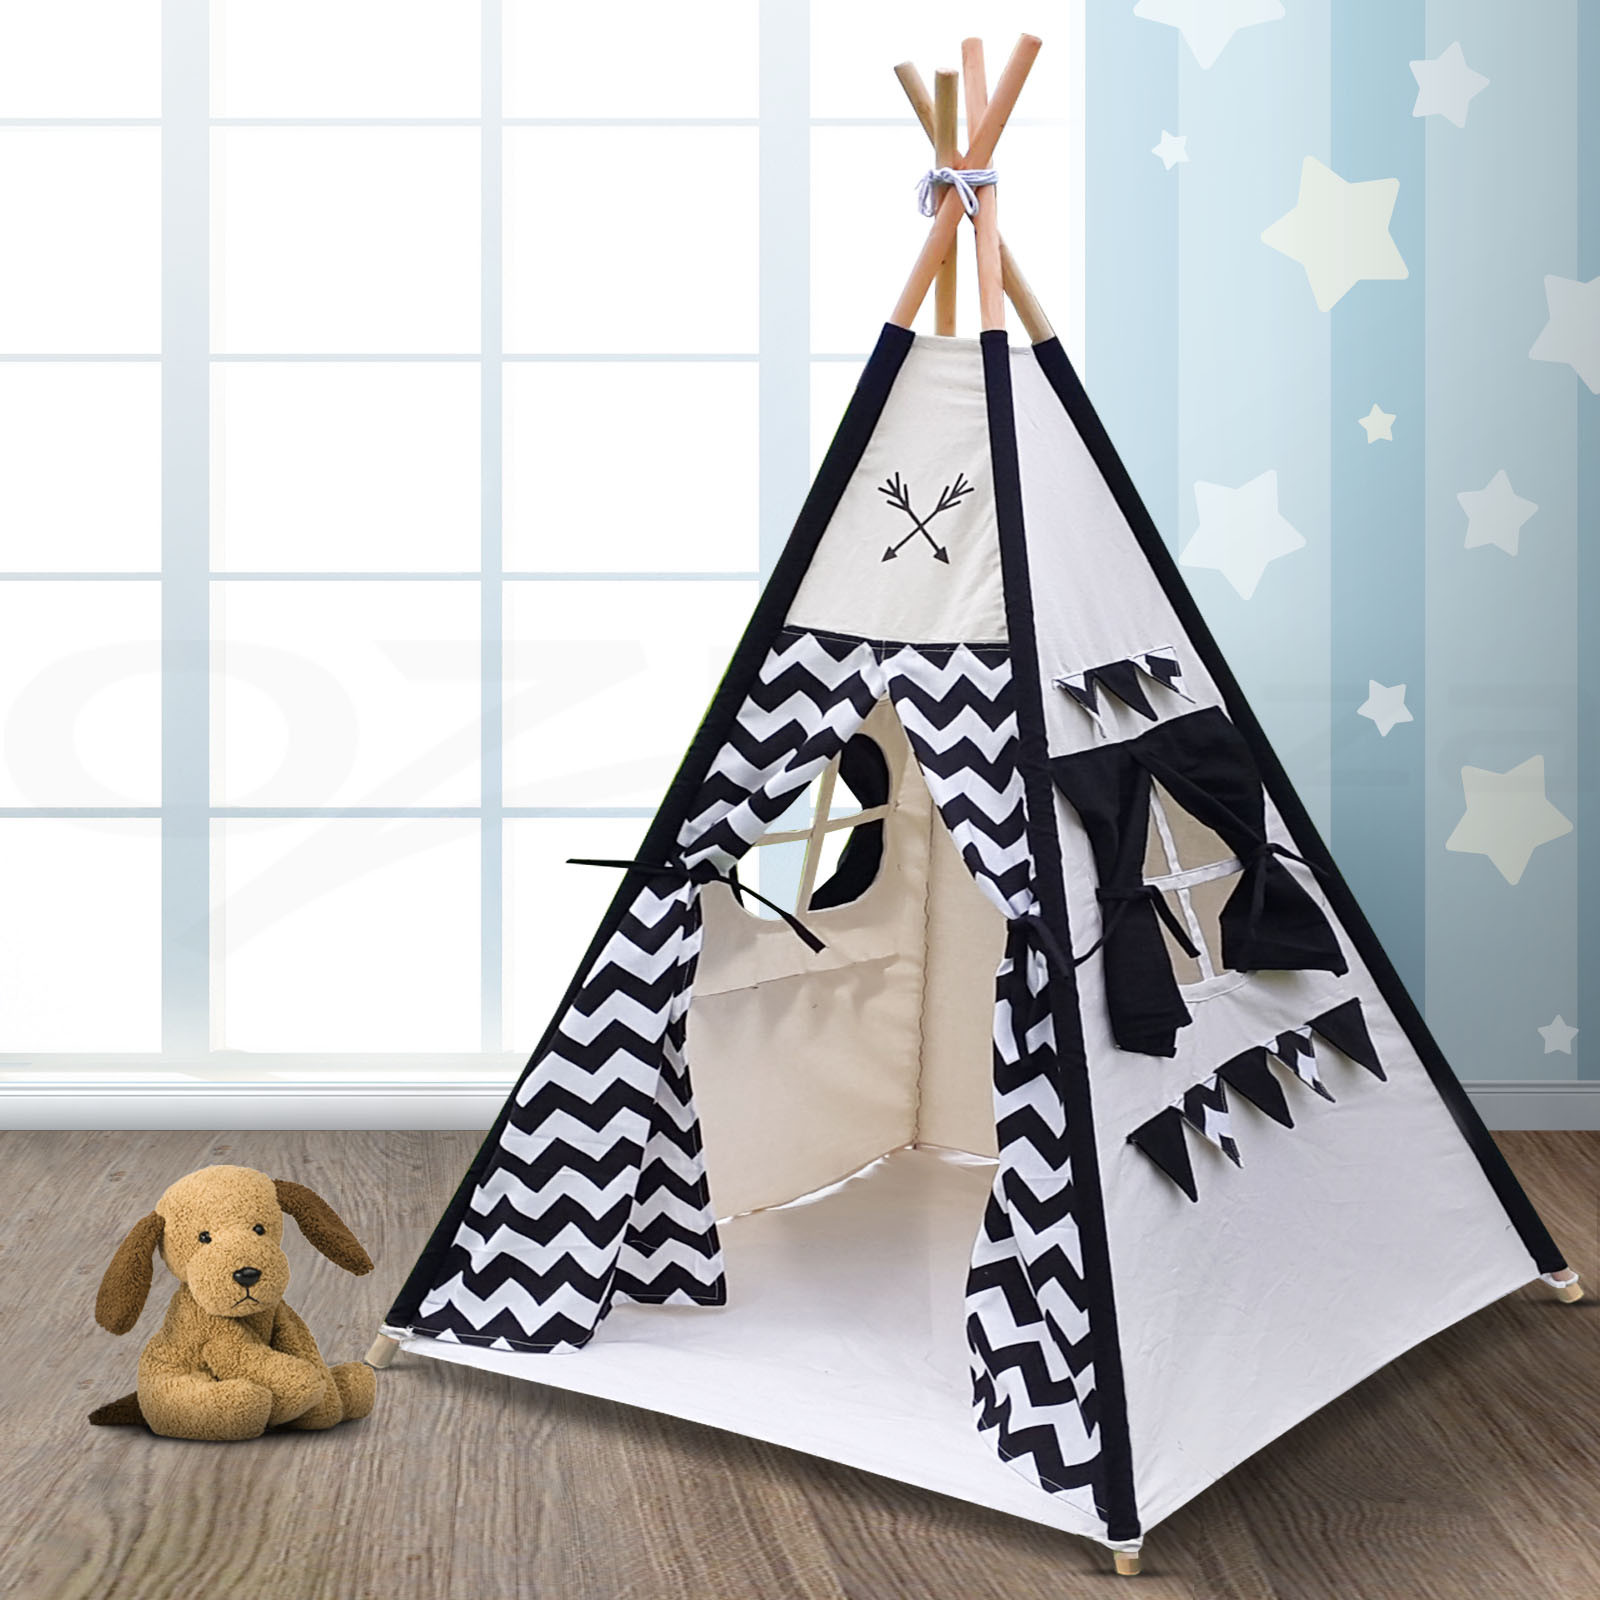 Kids Indoor Teepee  Keezi Kids Teepee Tent Children Pretend Play house Outdoor